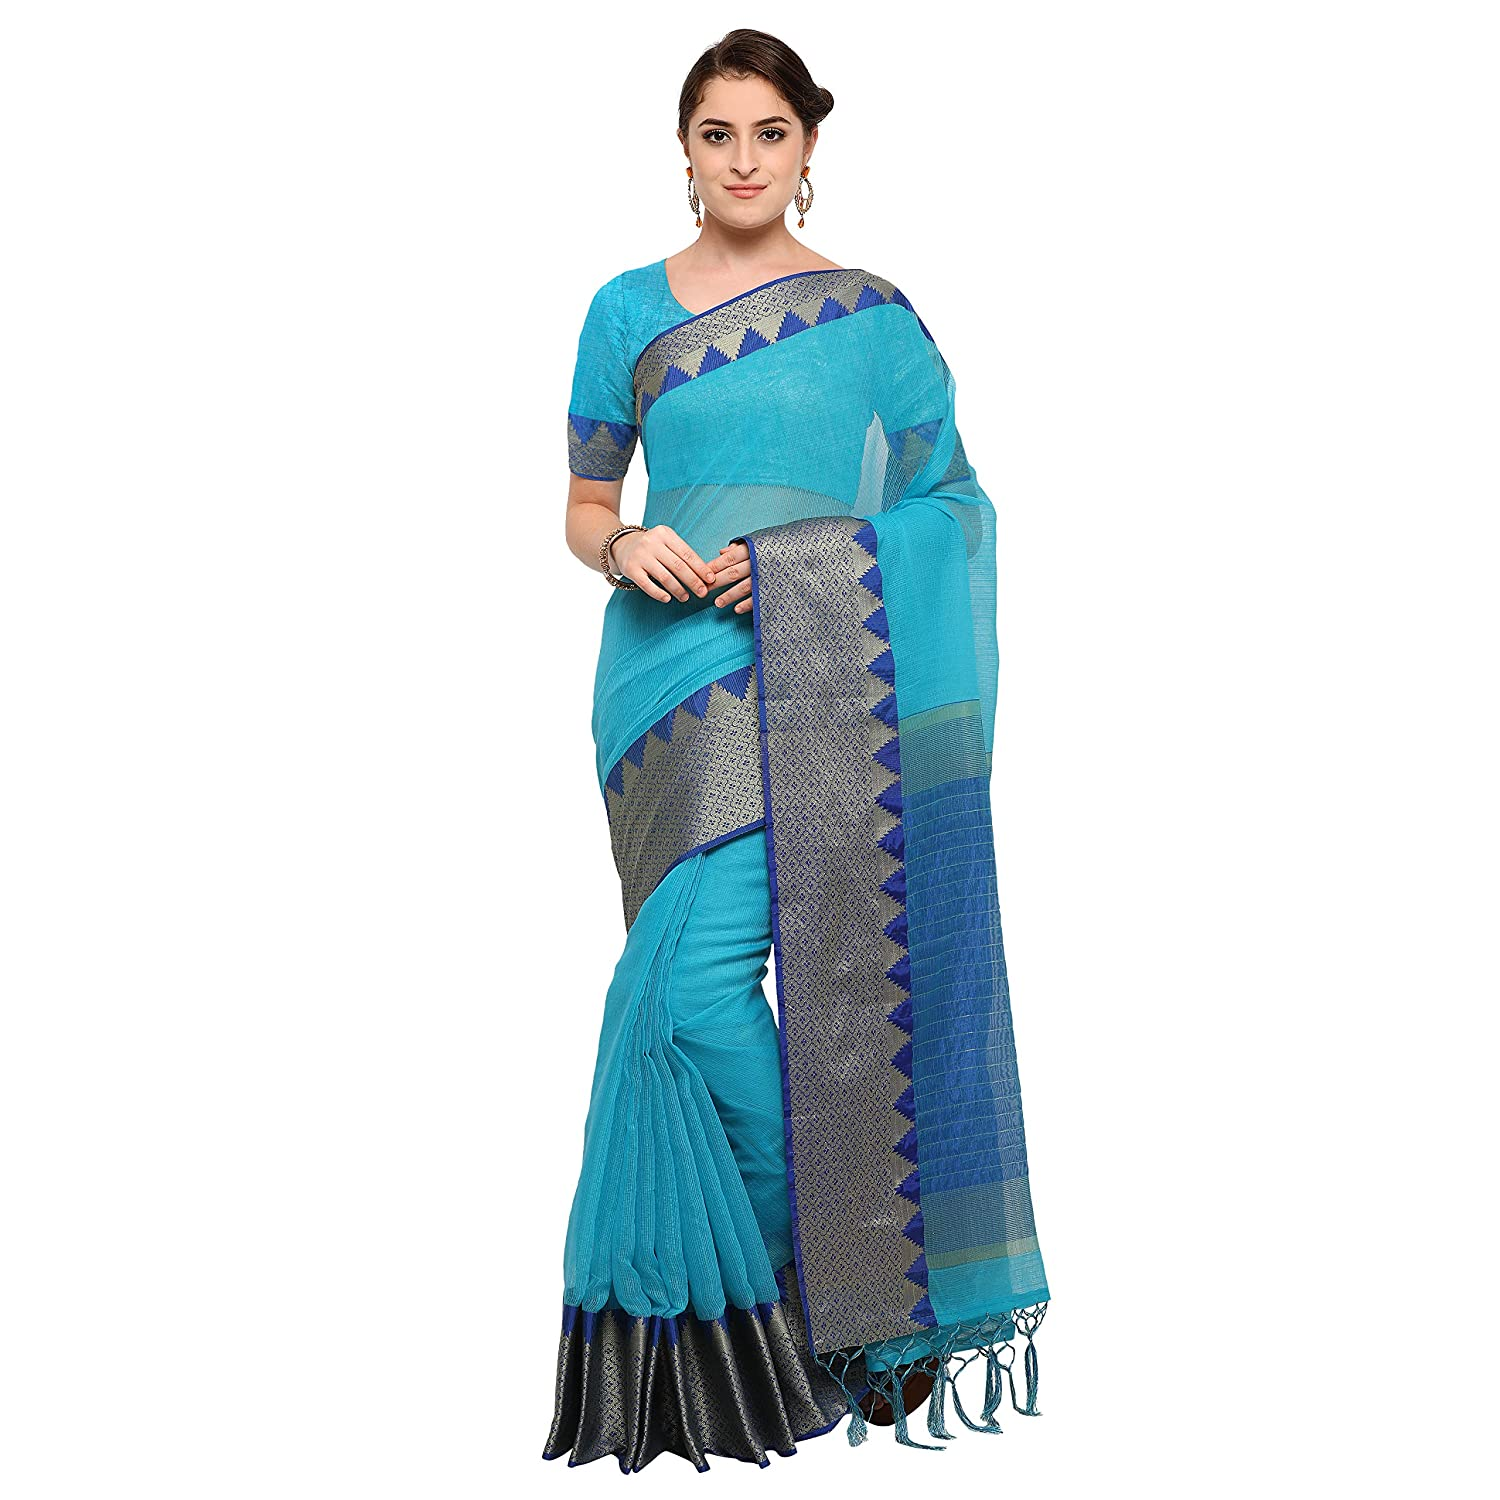 e23b40c4d1 Pisara Women Banarasi Cotton Silk Saree With Blouse Piece,Blue sari:  Amazon.in: Clothing & Accessories